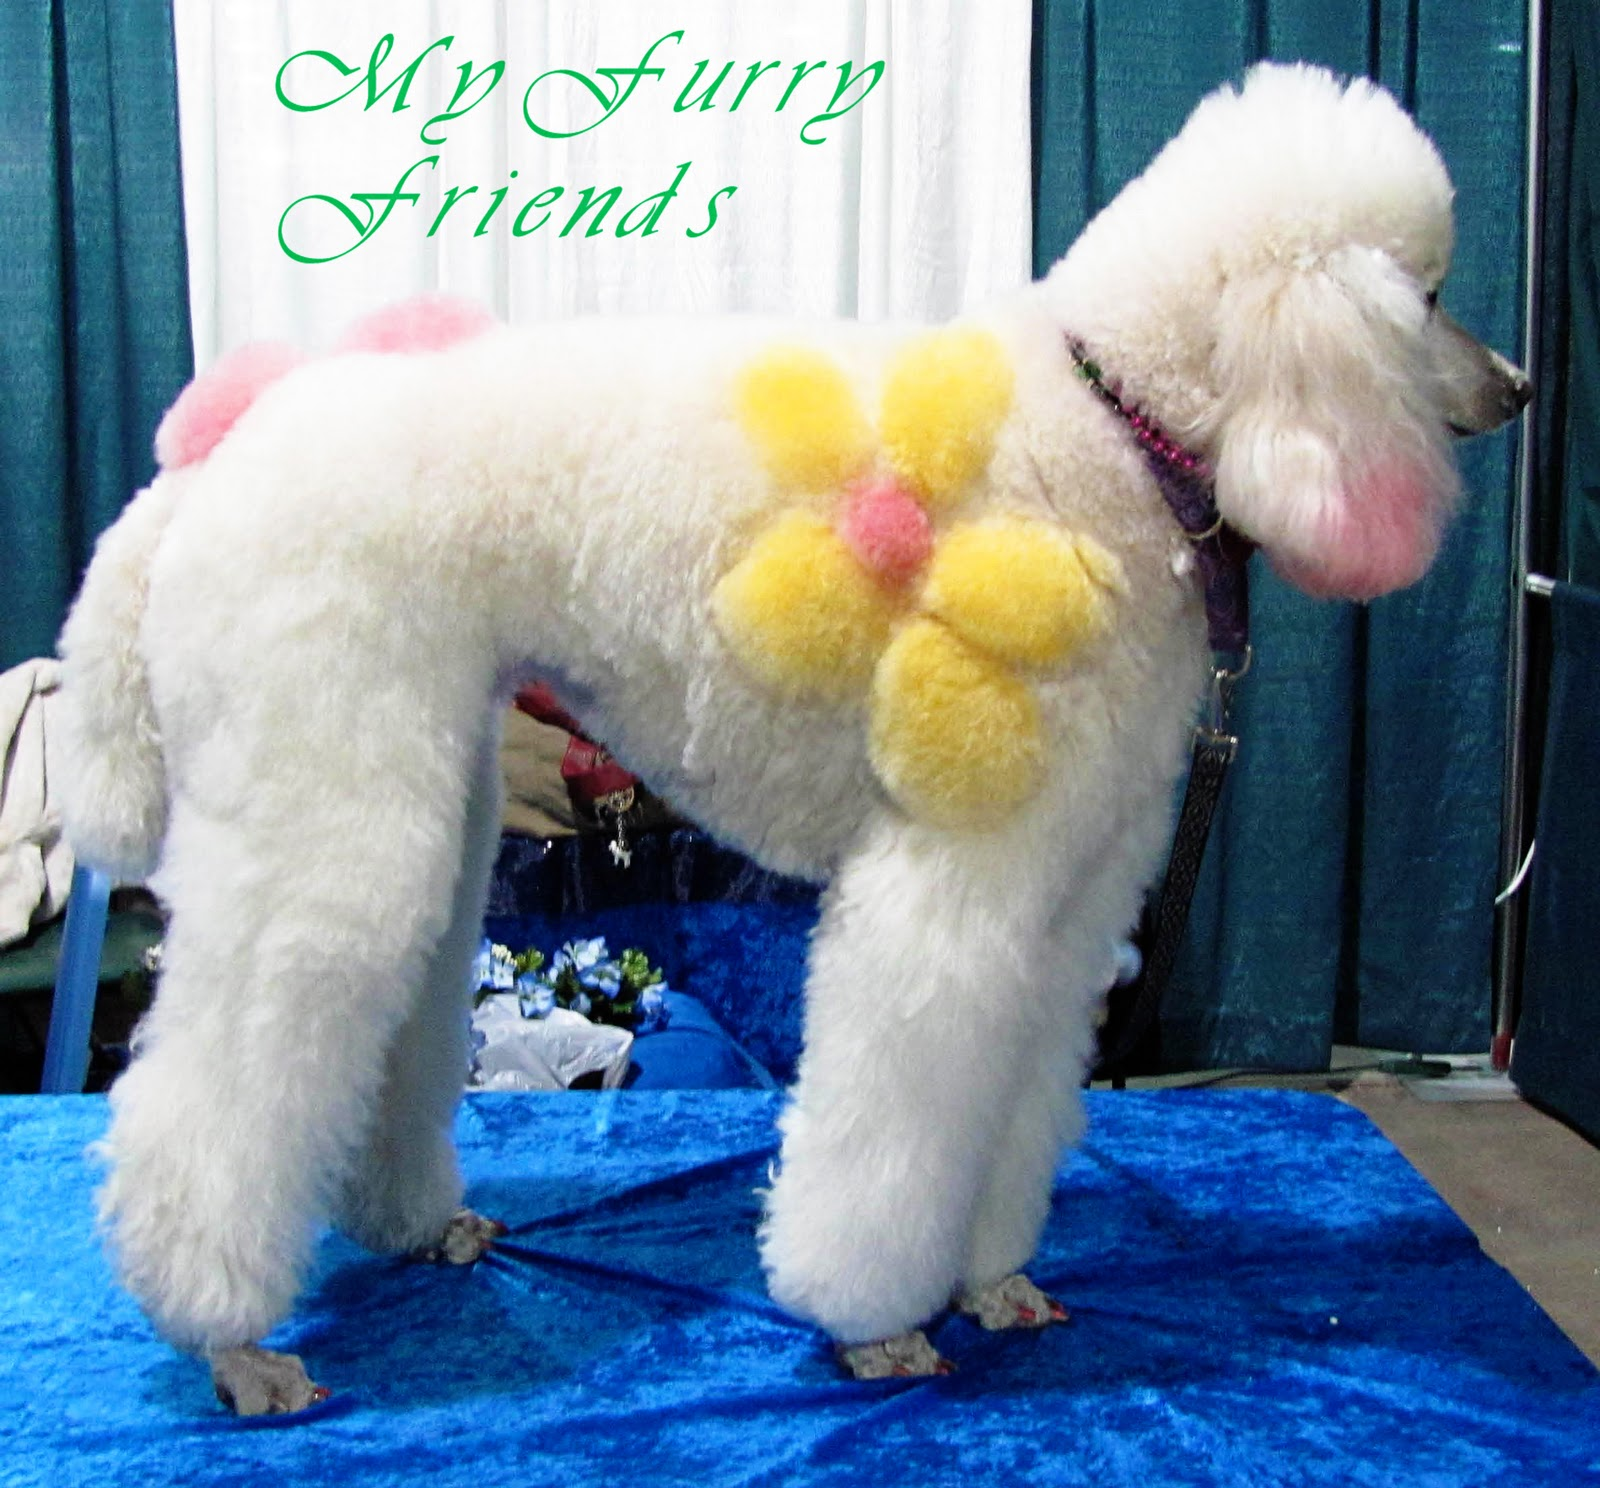 Standard poodle haircuts or of unless soft haircuts standard poodle - When Kipley S Owner Saw Hanna She Got All Excited And Wanted To Know If I Would Color Her Dog